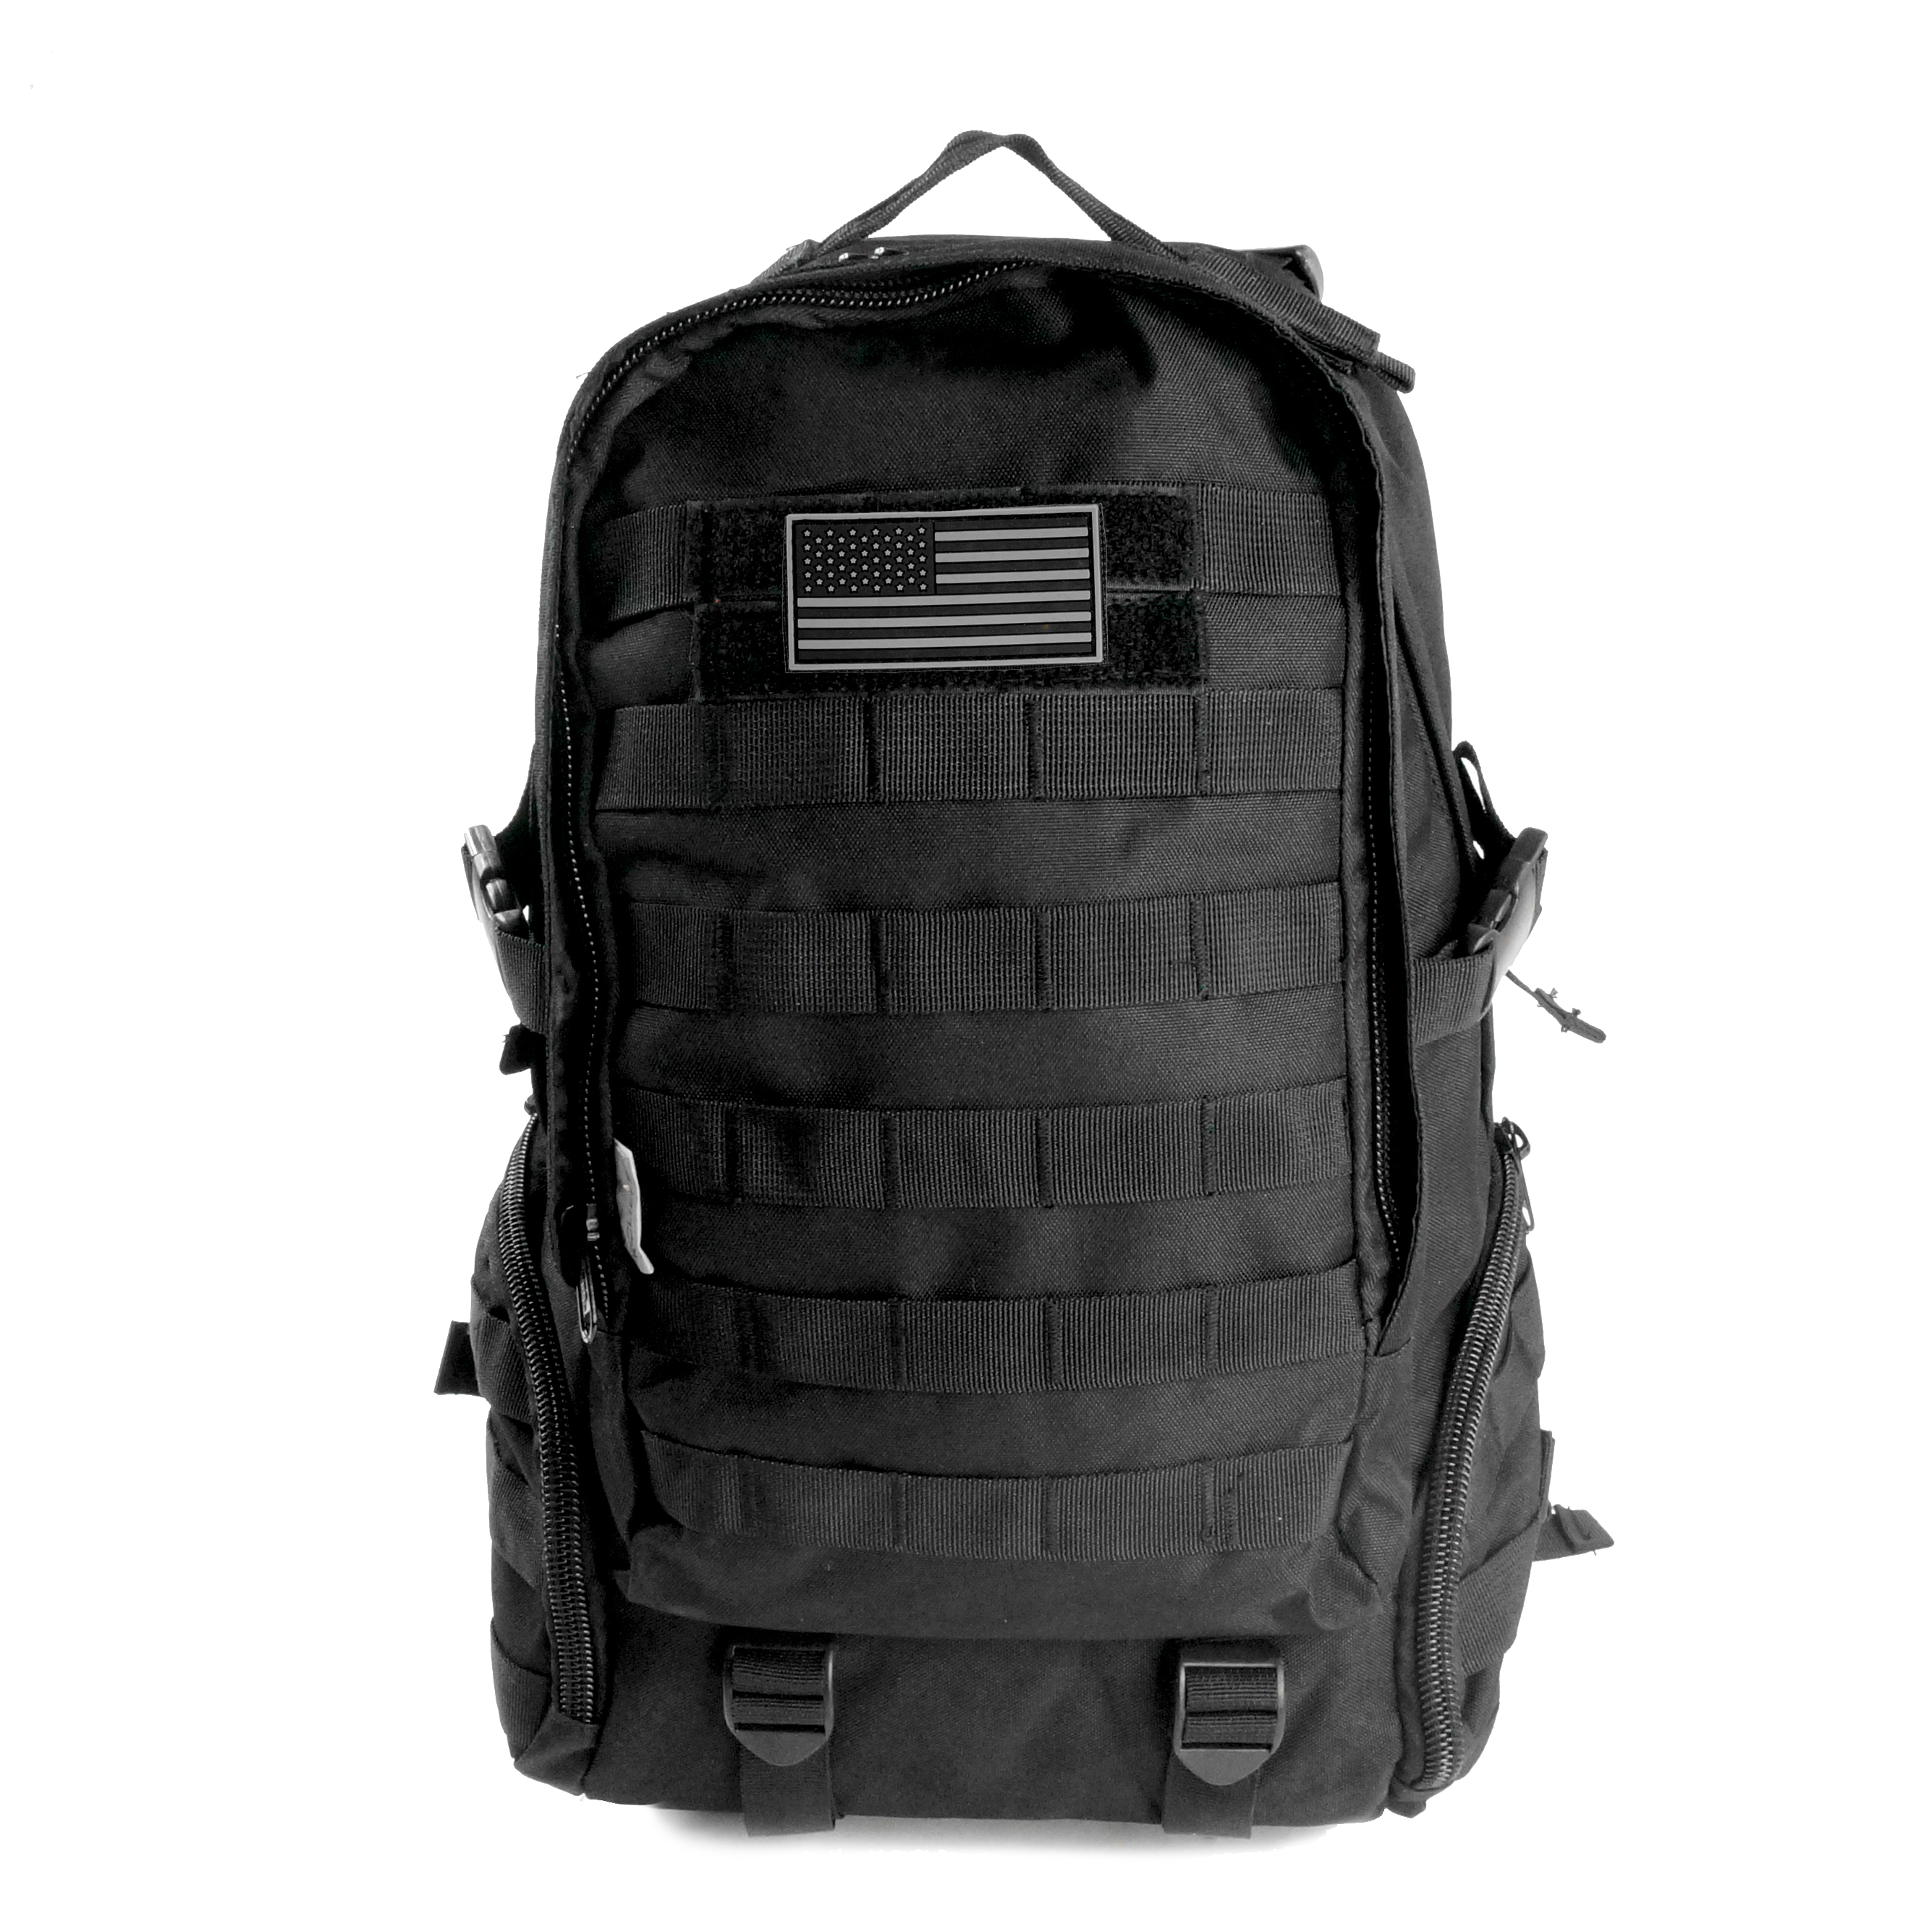 Backpack with Flag Patch Expandable Travel Military Hiking